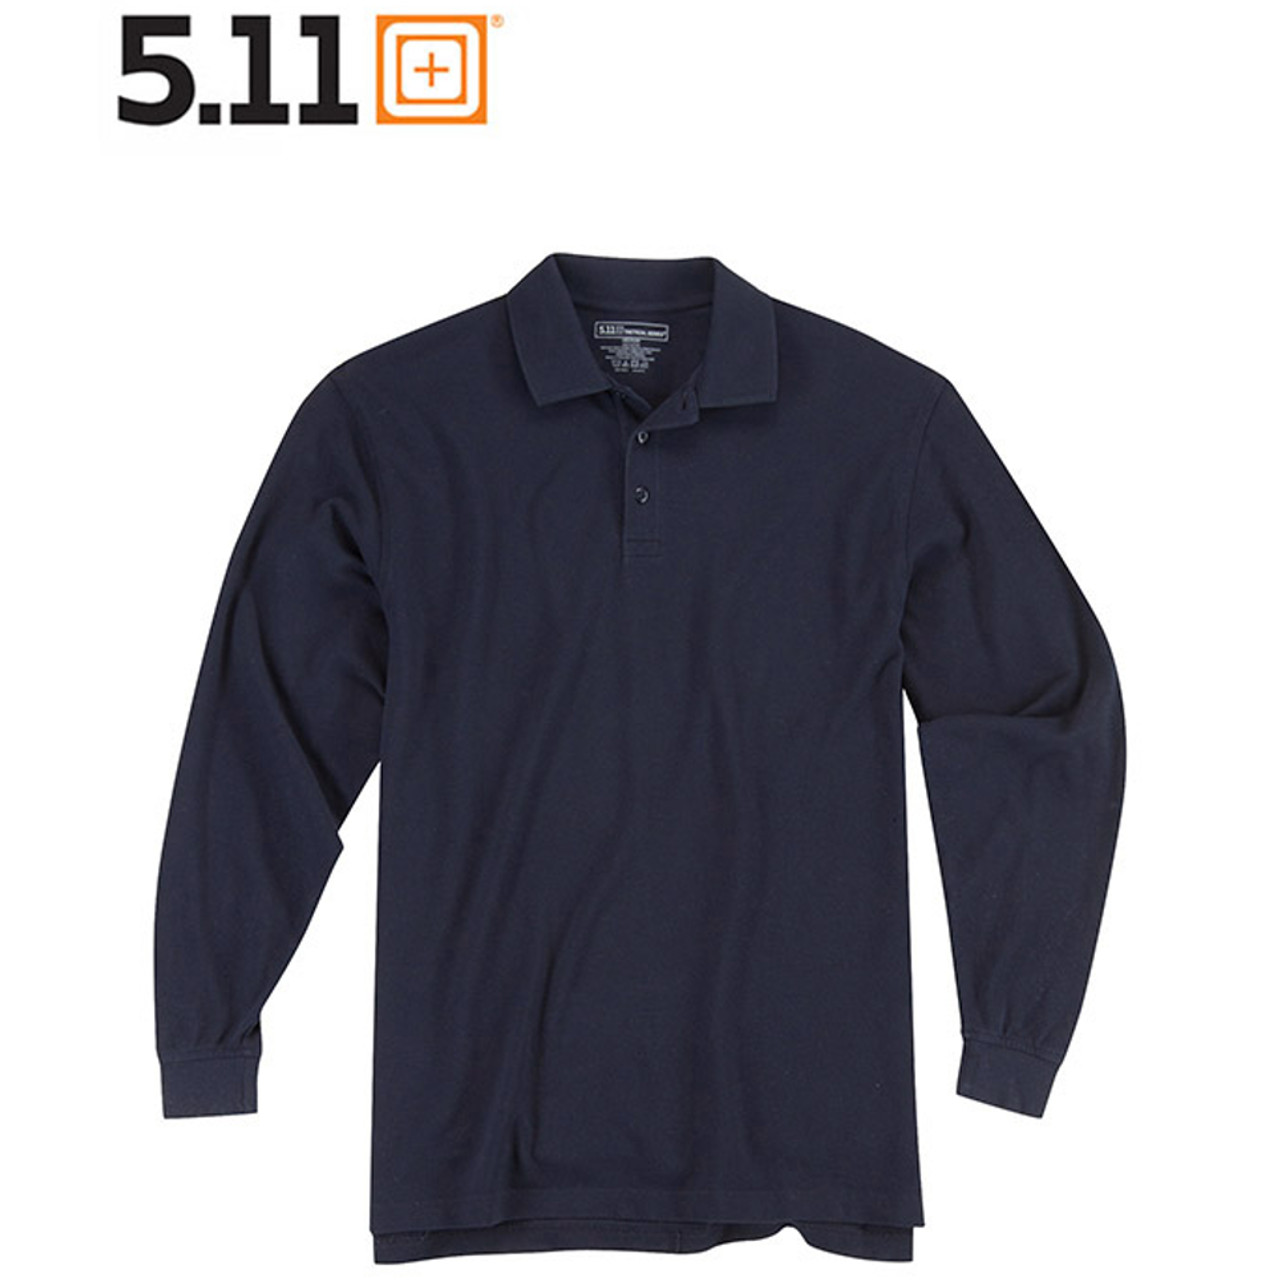 5.11 UTILITY POLO Langarm-Shirt dark navy